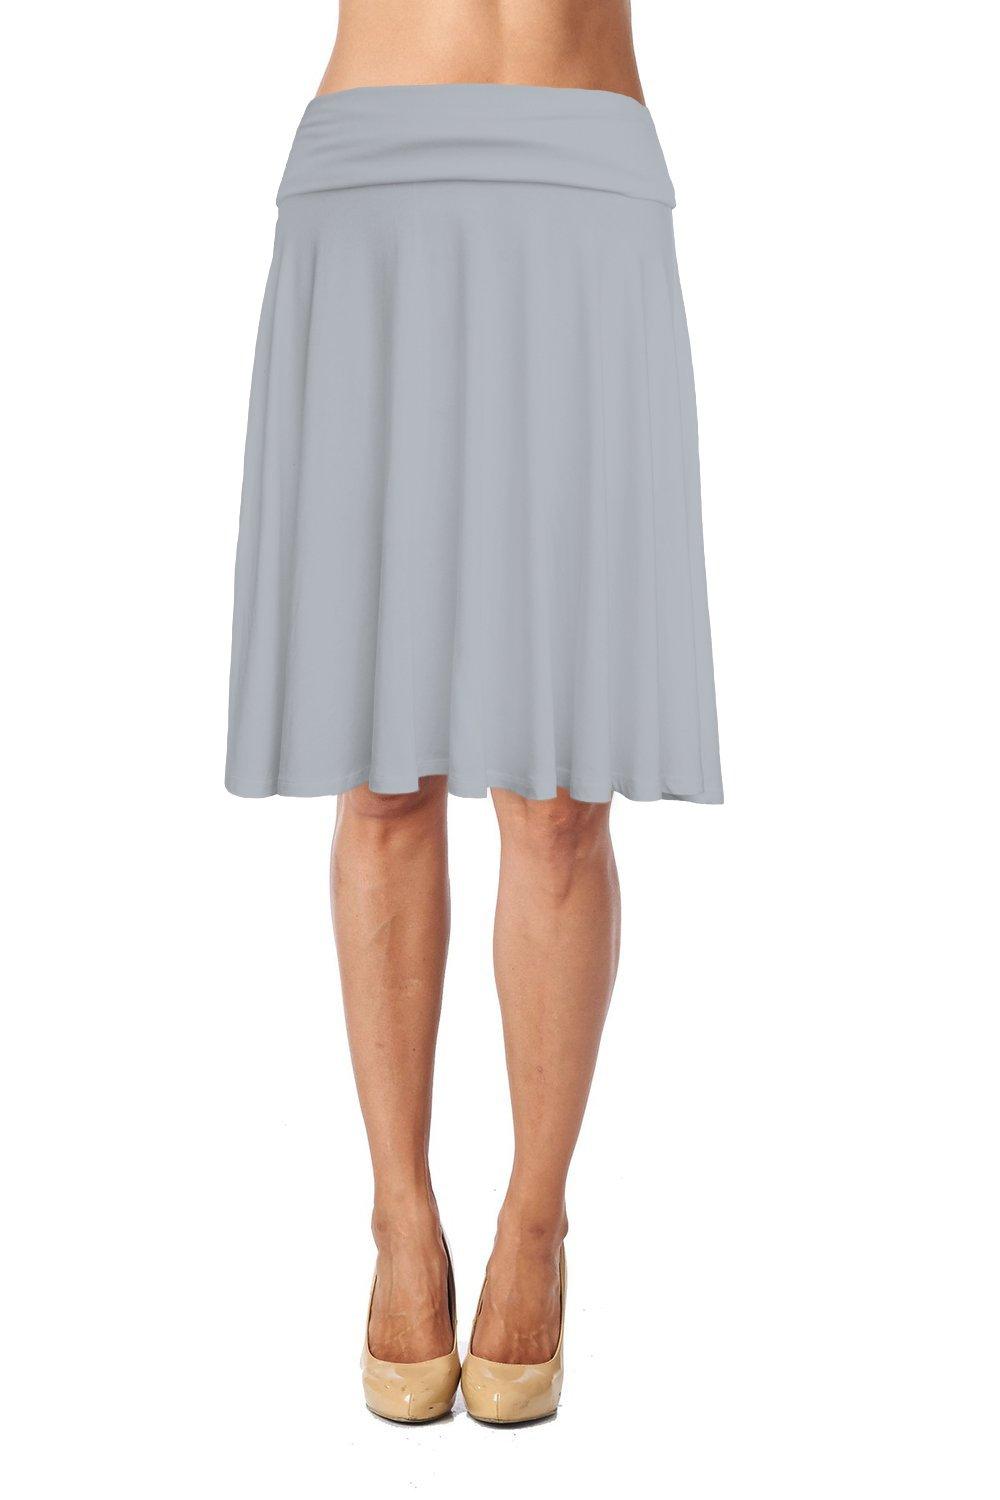 Womens Basic Soft Stretch Mid Midi Knee Length Flare Flowy Skirt Made in USA